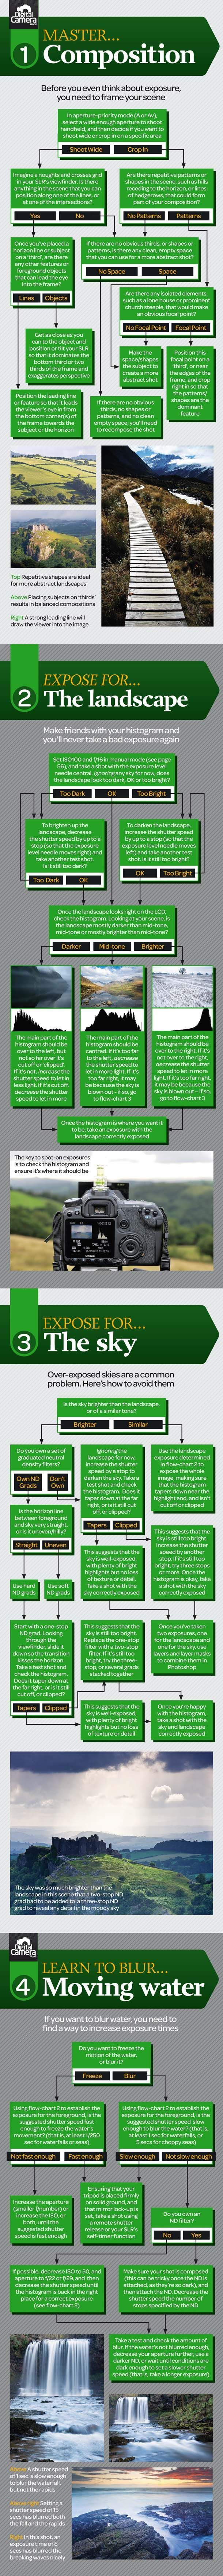 Free landscape photography cheat sheet- Digital Camera World